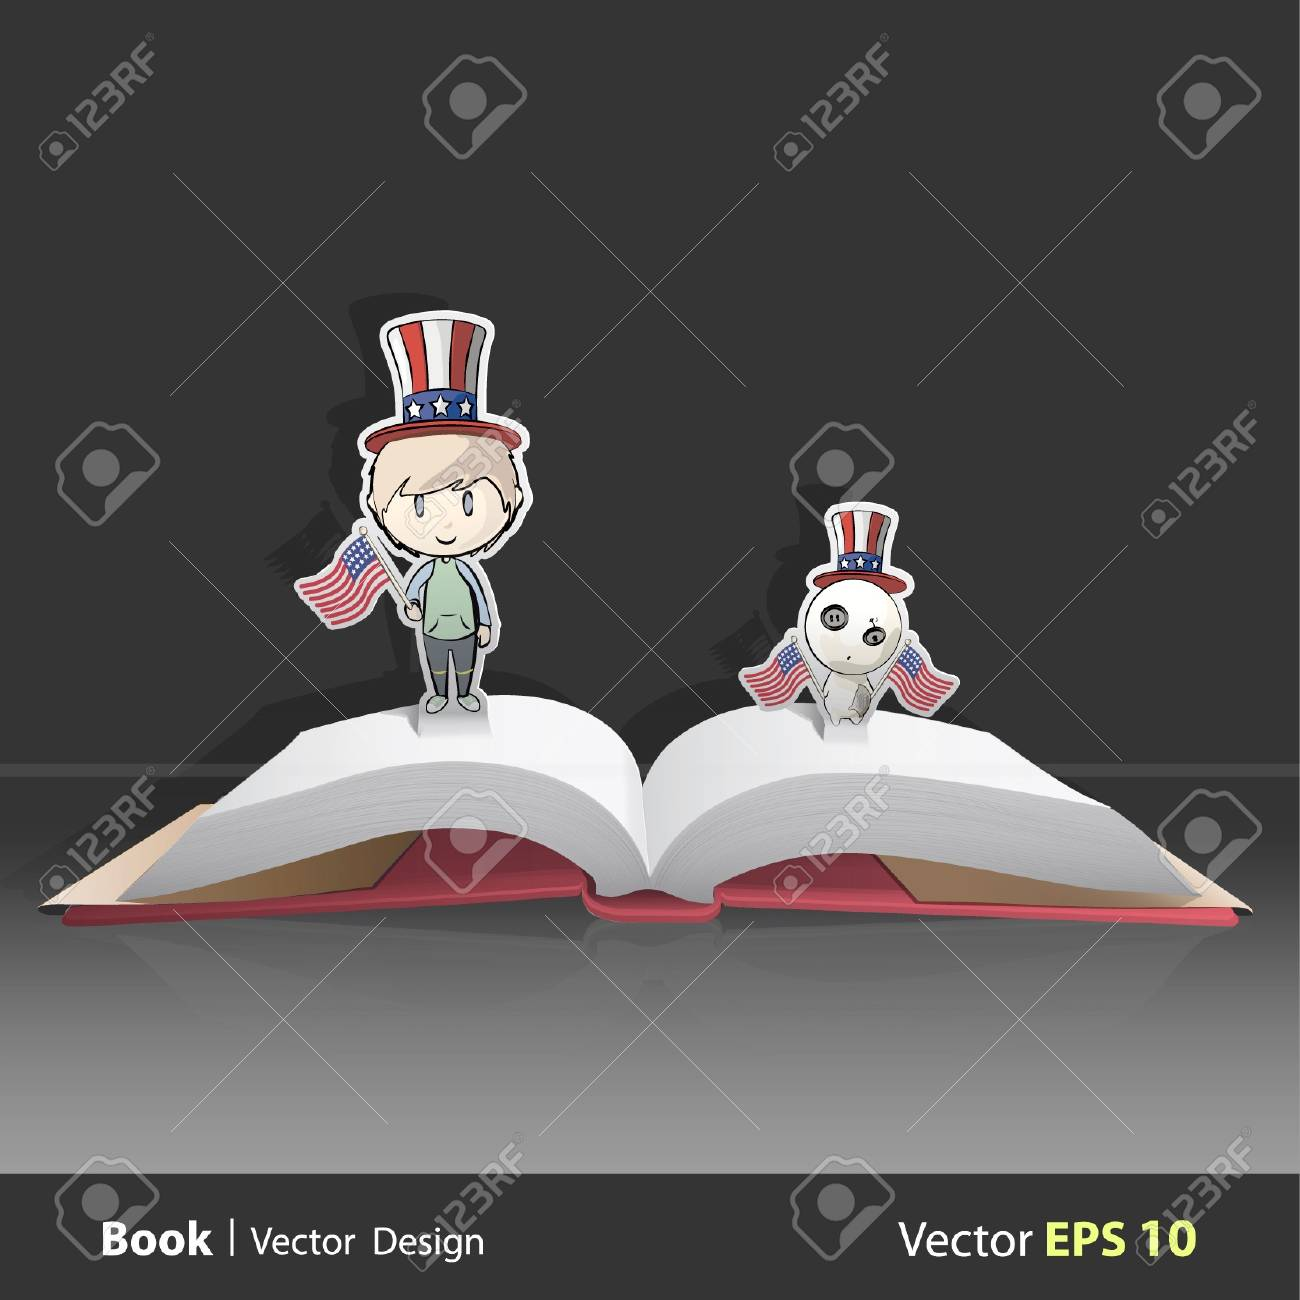 Open book with child and teddy dressed as American with flags  Vector design  Pop-Up Illustration Stock Vector - 17265520